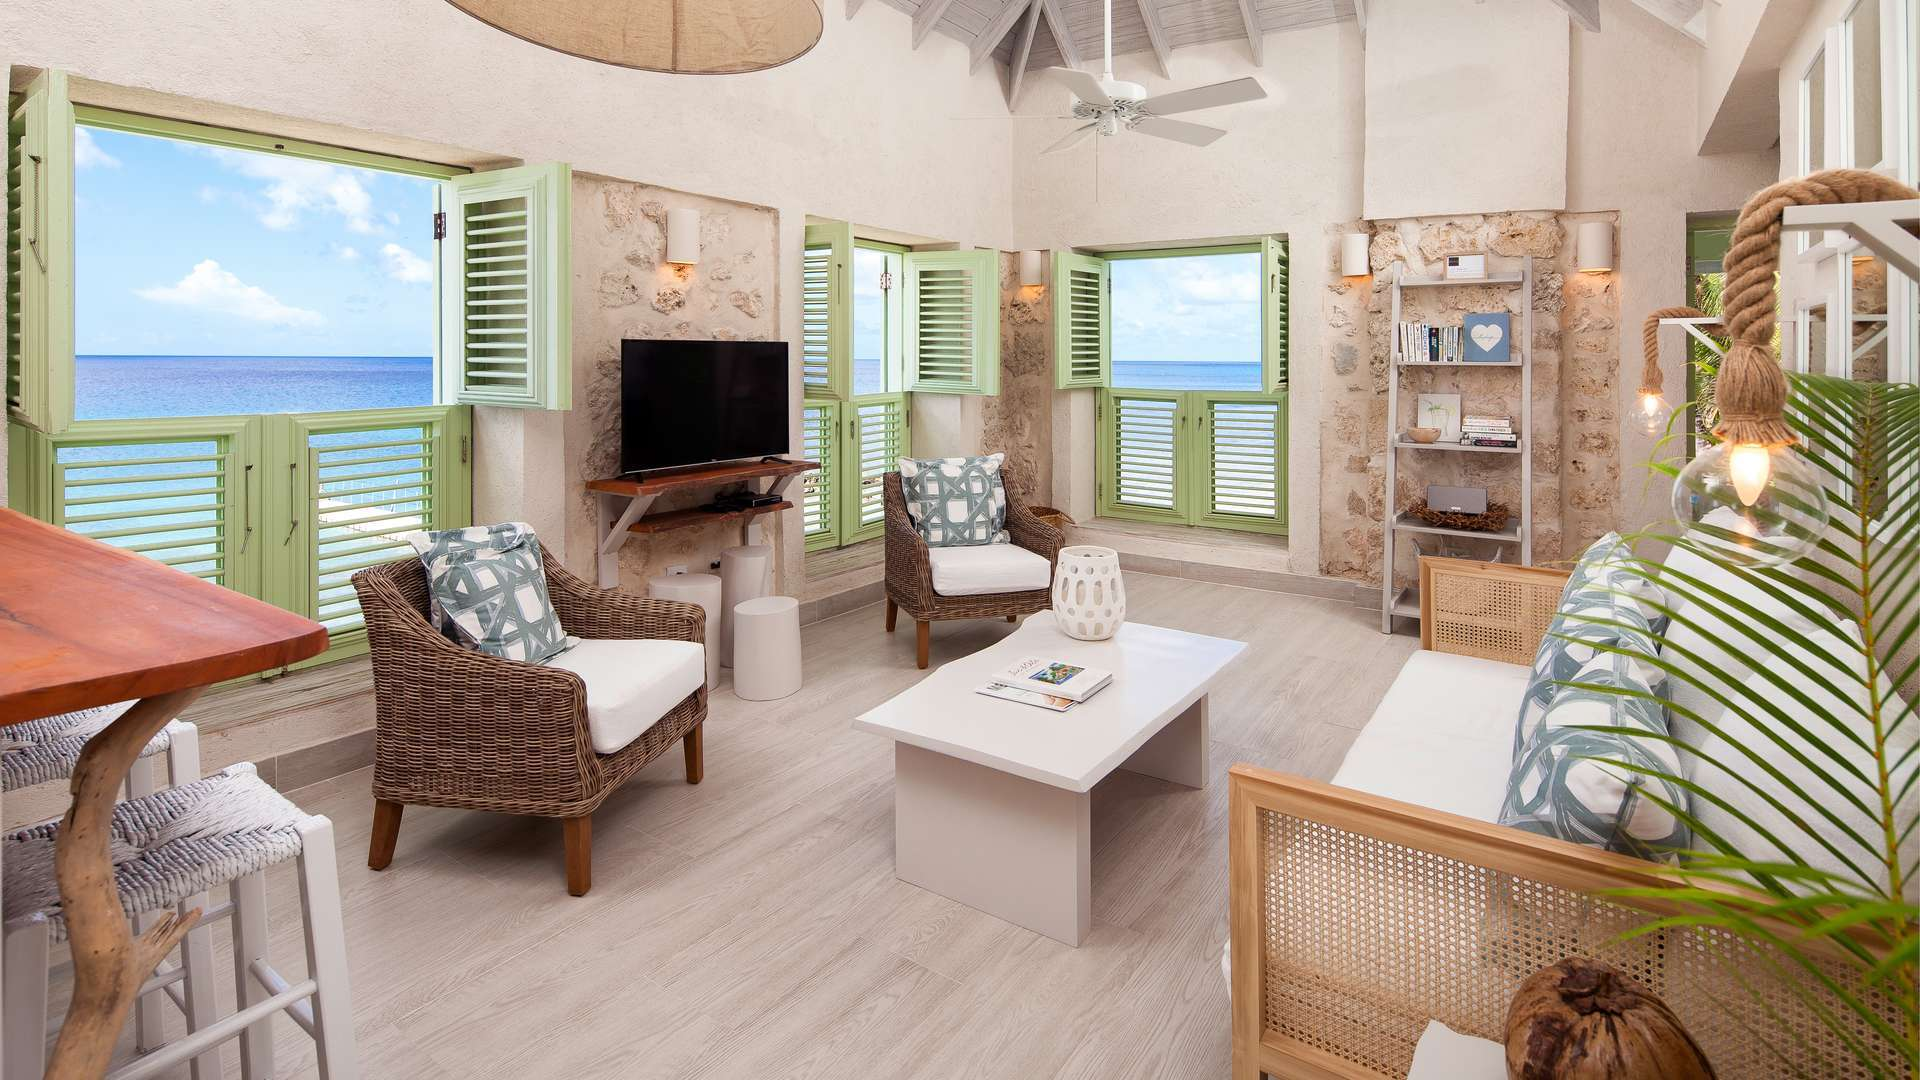 Little Good Harbour | A Kuoni Hotel in Barbados